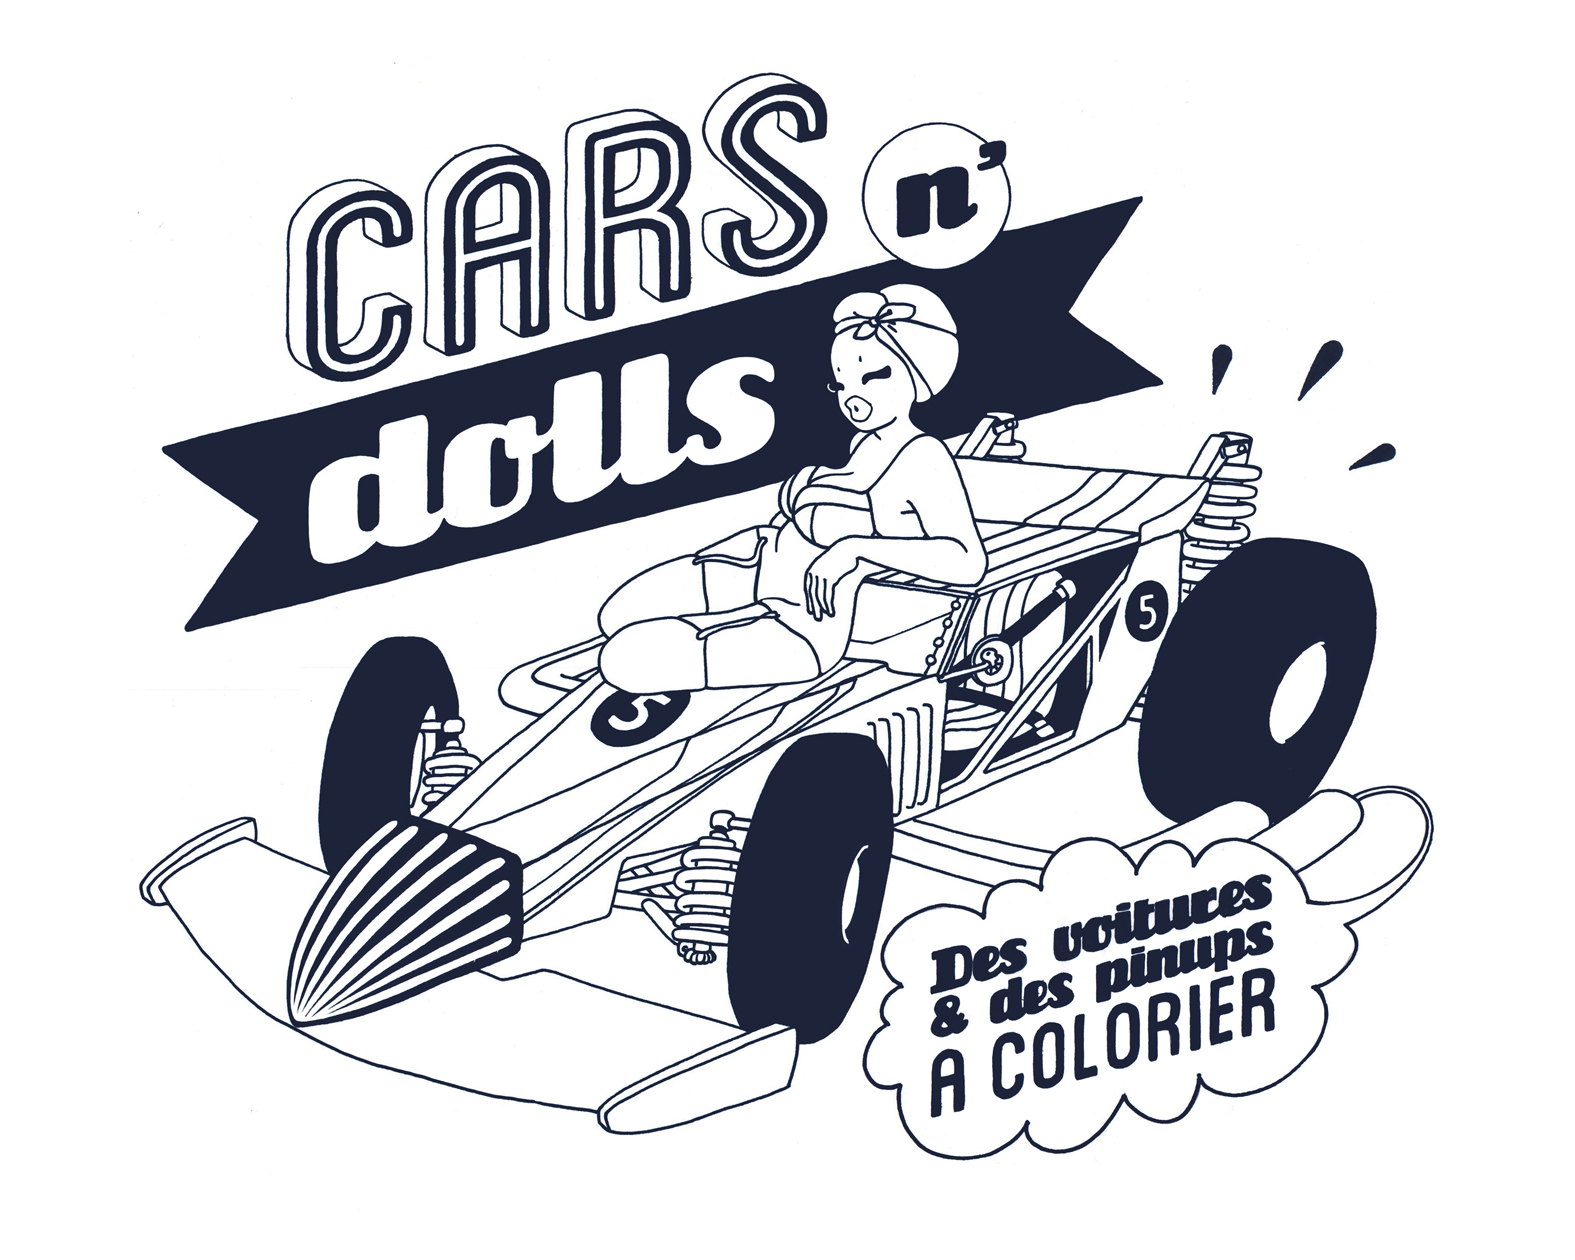 Coloring for adults cars - Cars N Dolls Image With Car From The Gallery Unclassifiable